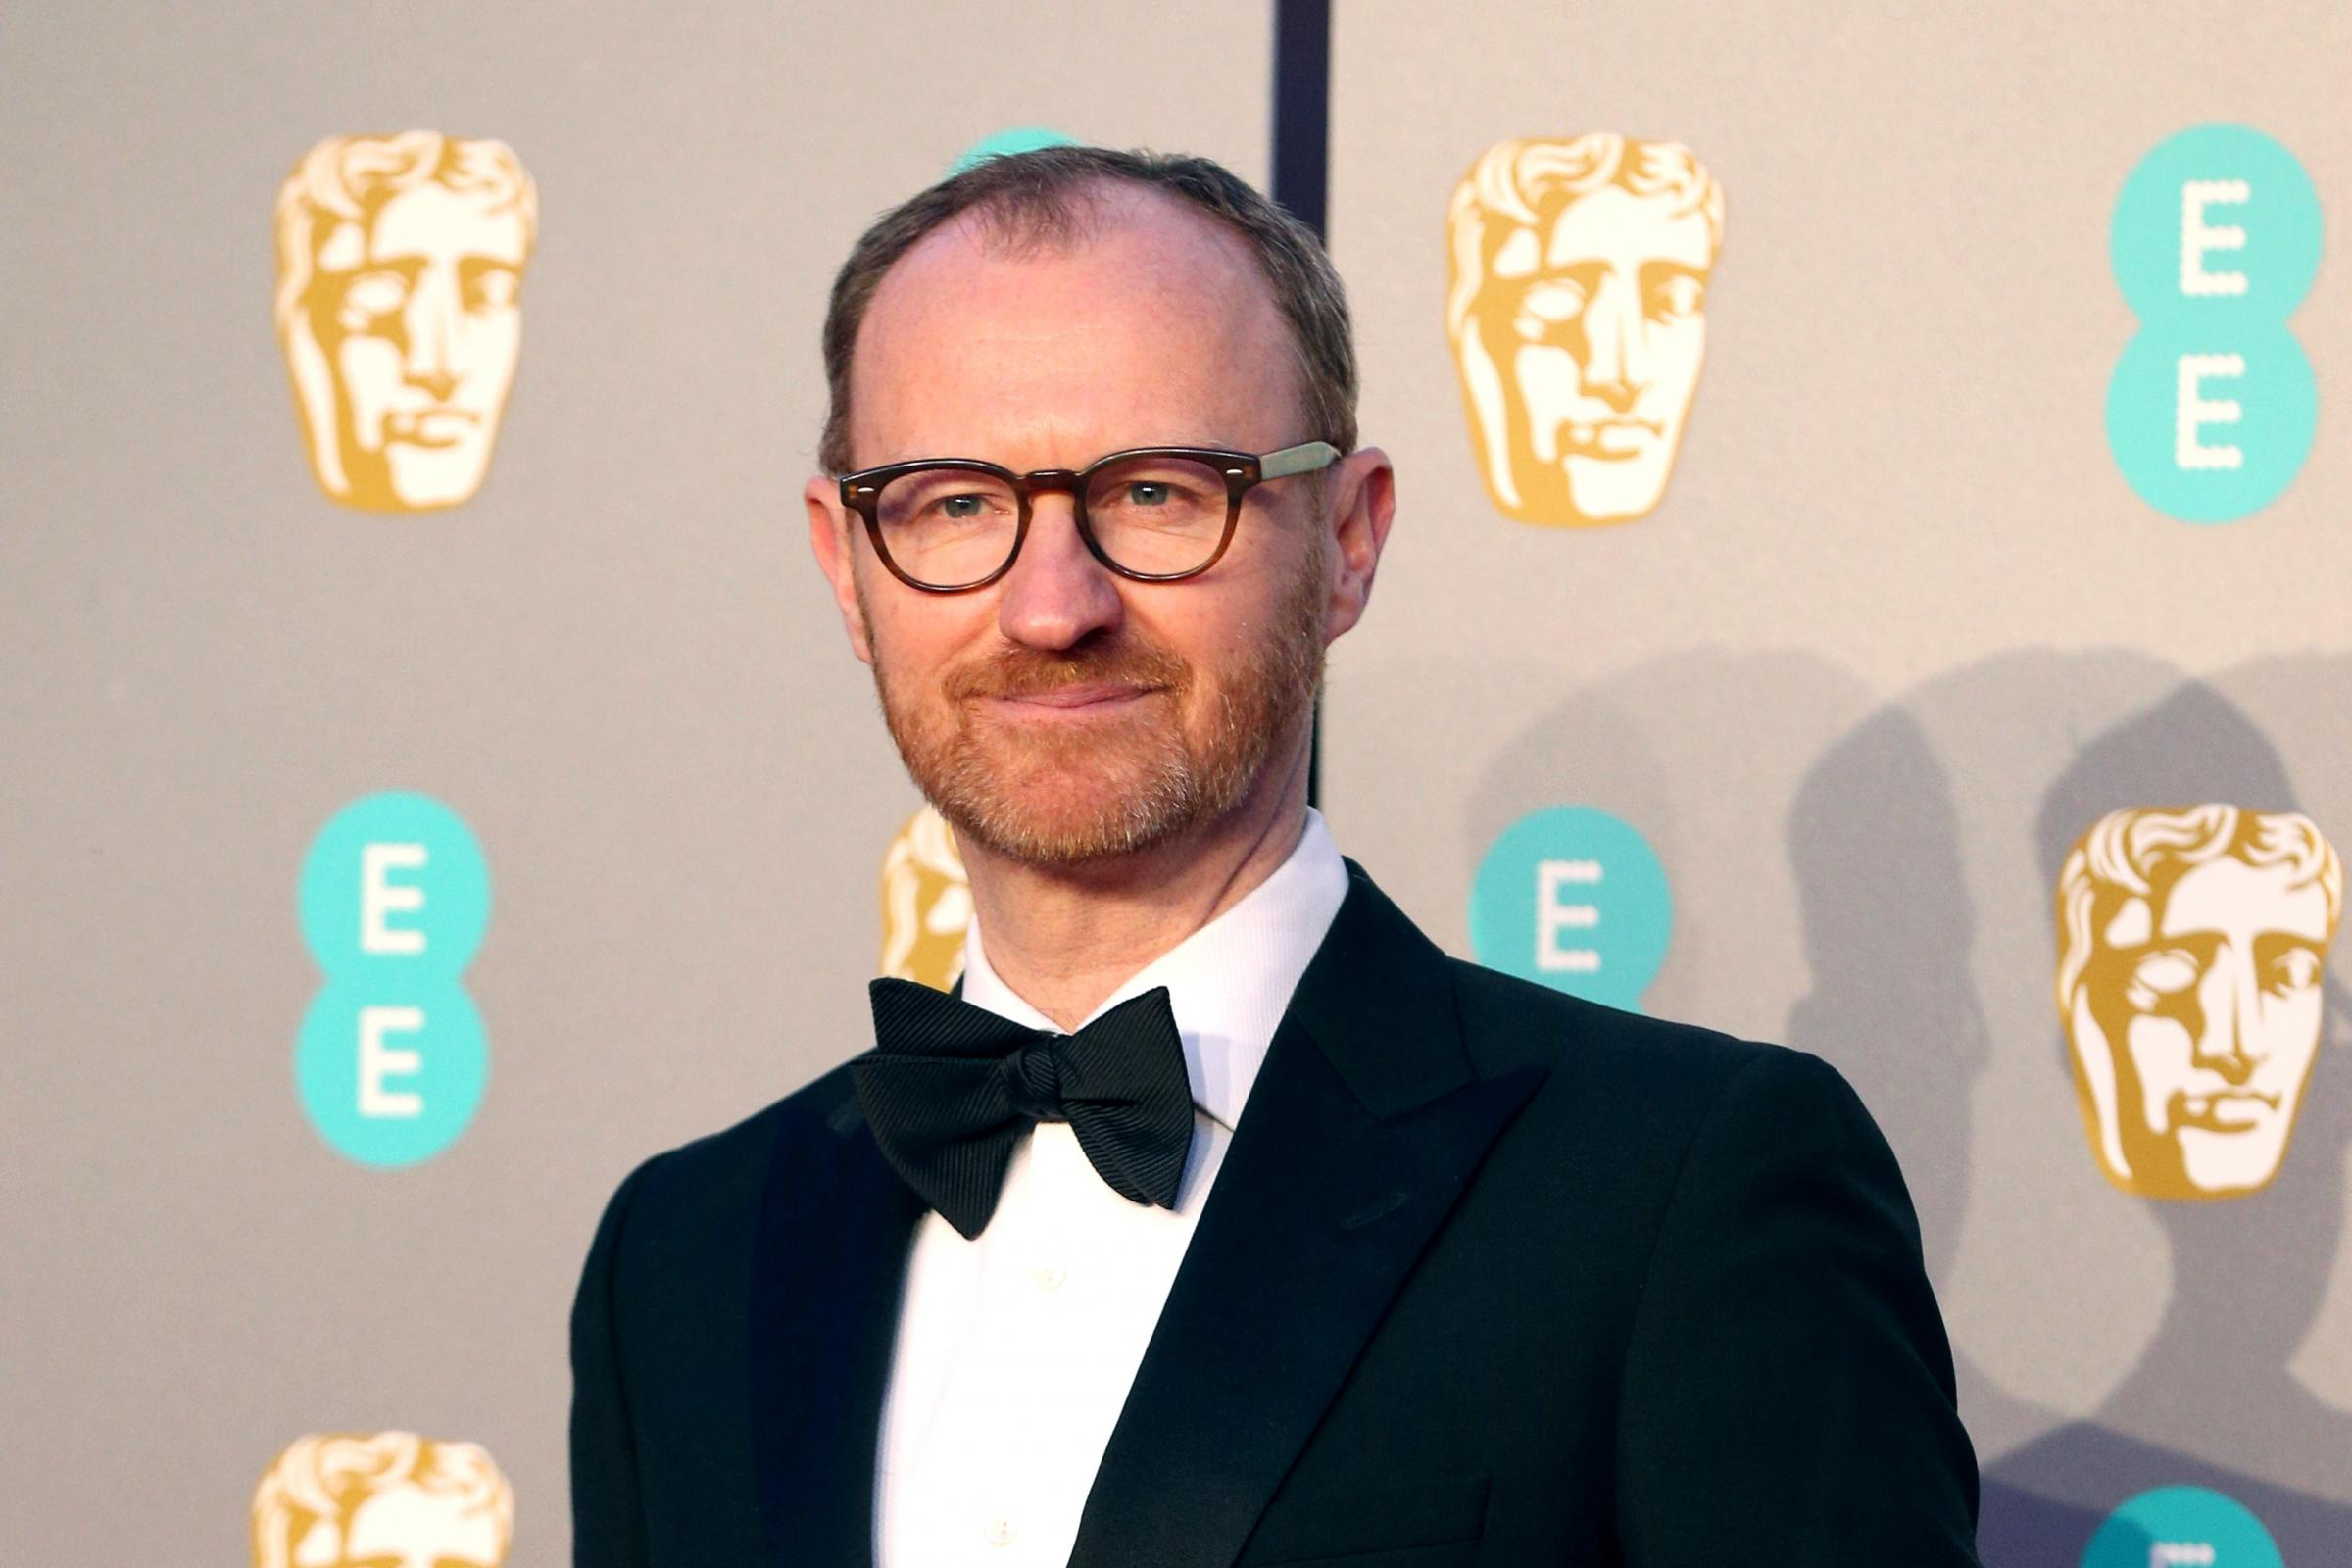 Mark Gatiss at the Baftas